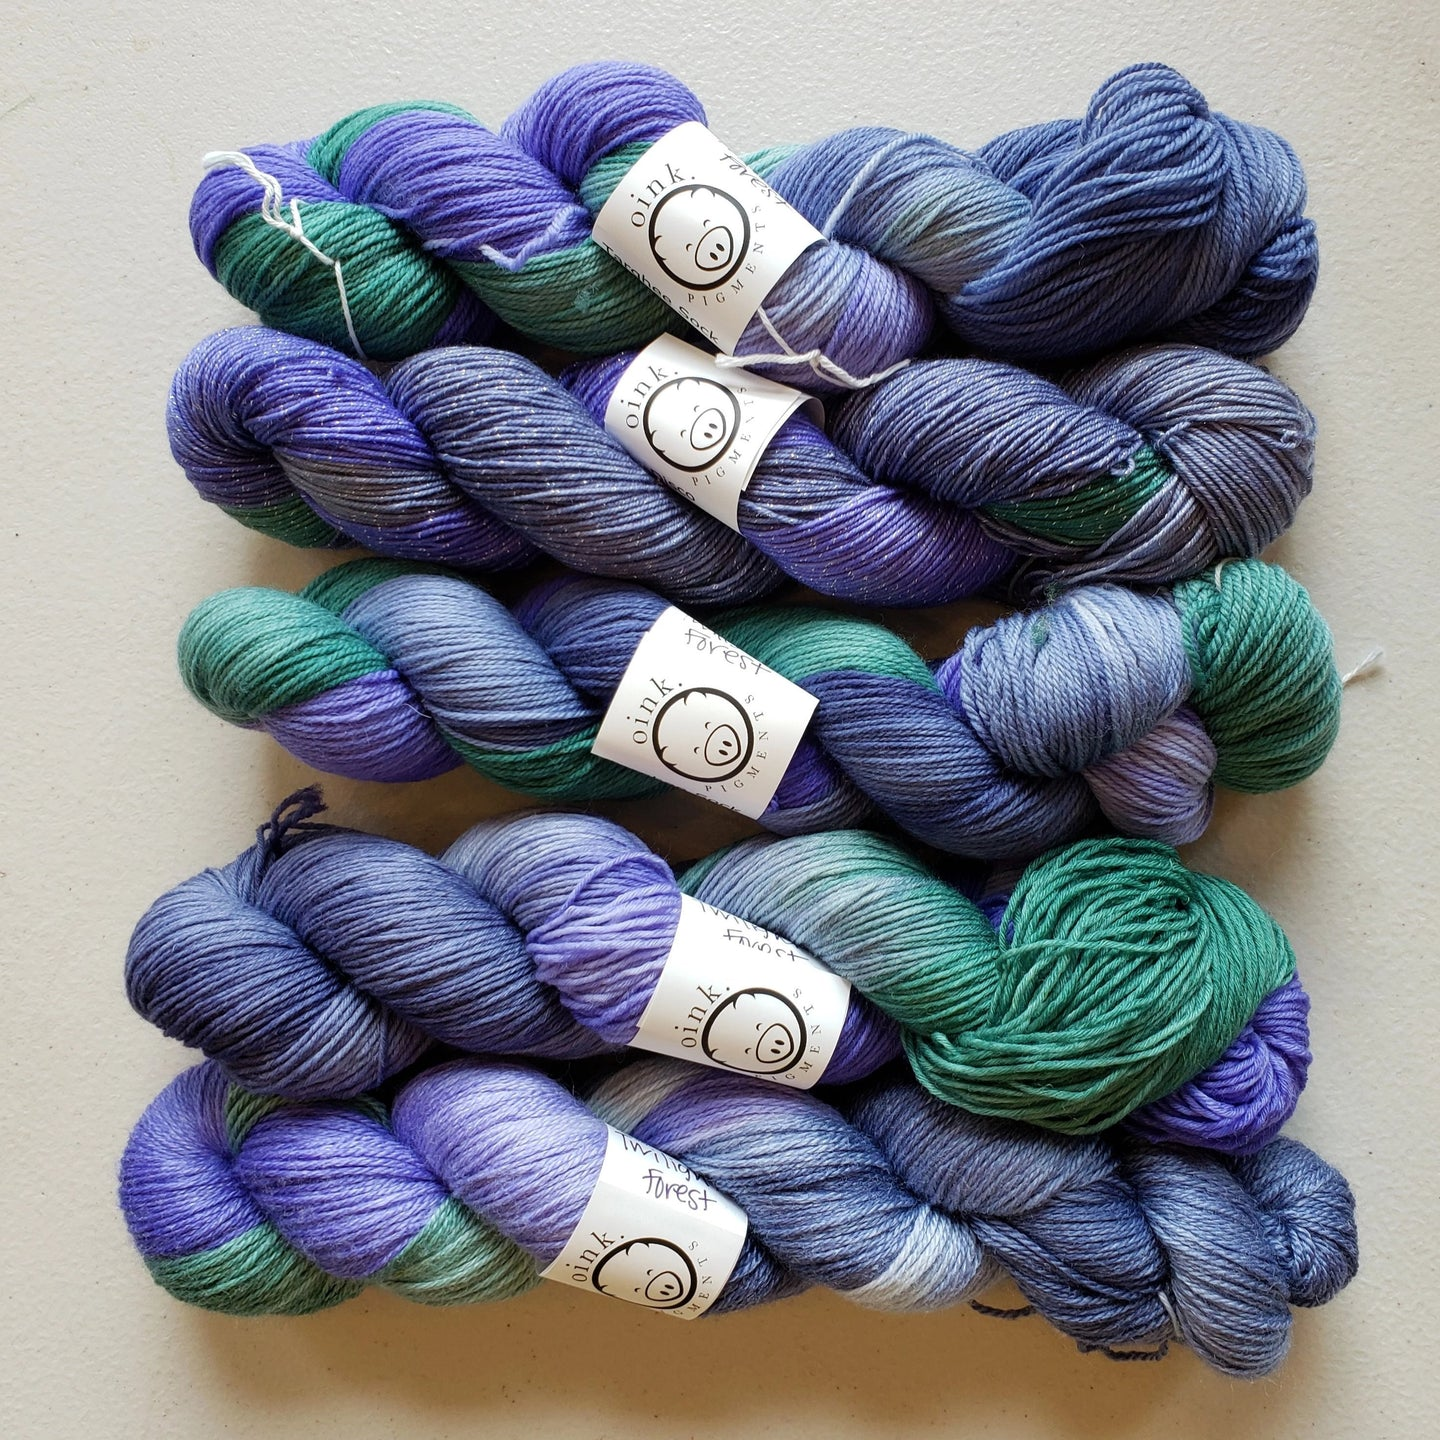 December 2019 Yarn of the Month: Twilight Forest (pre-order)